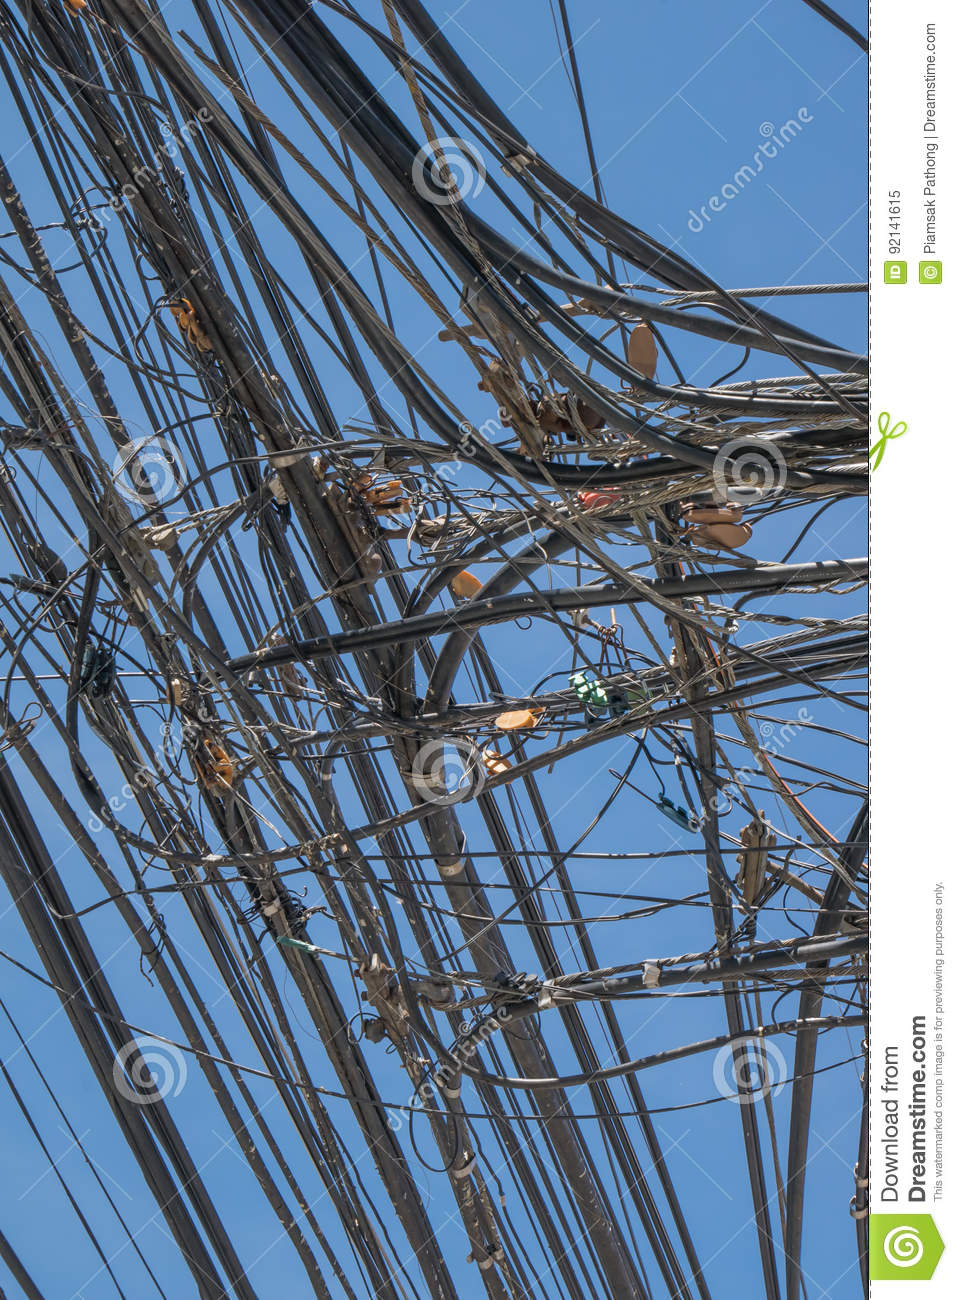 Tangled up electric wires stock image. Image of fire - 92141615